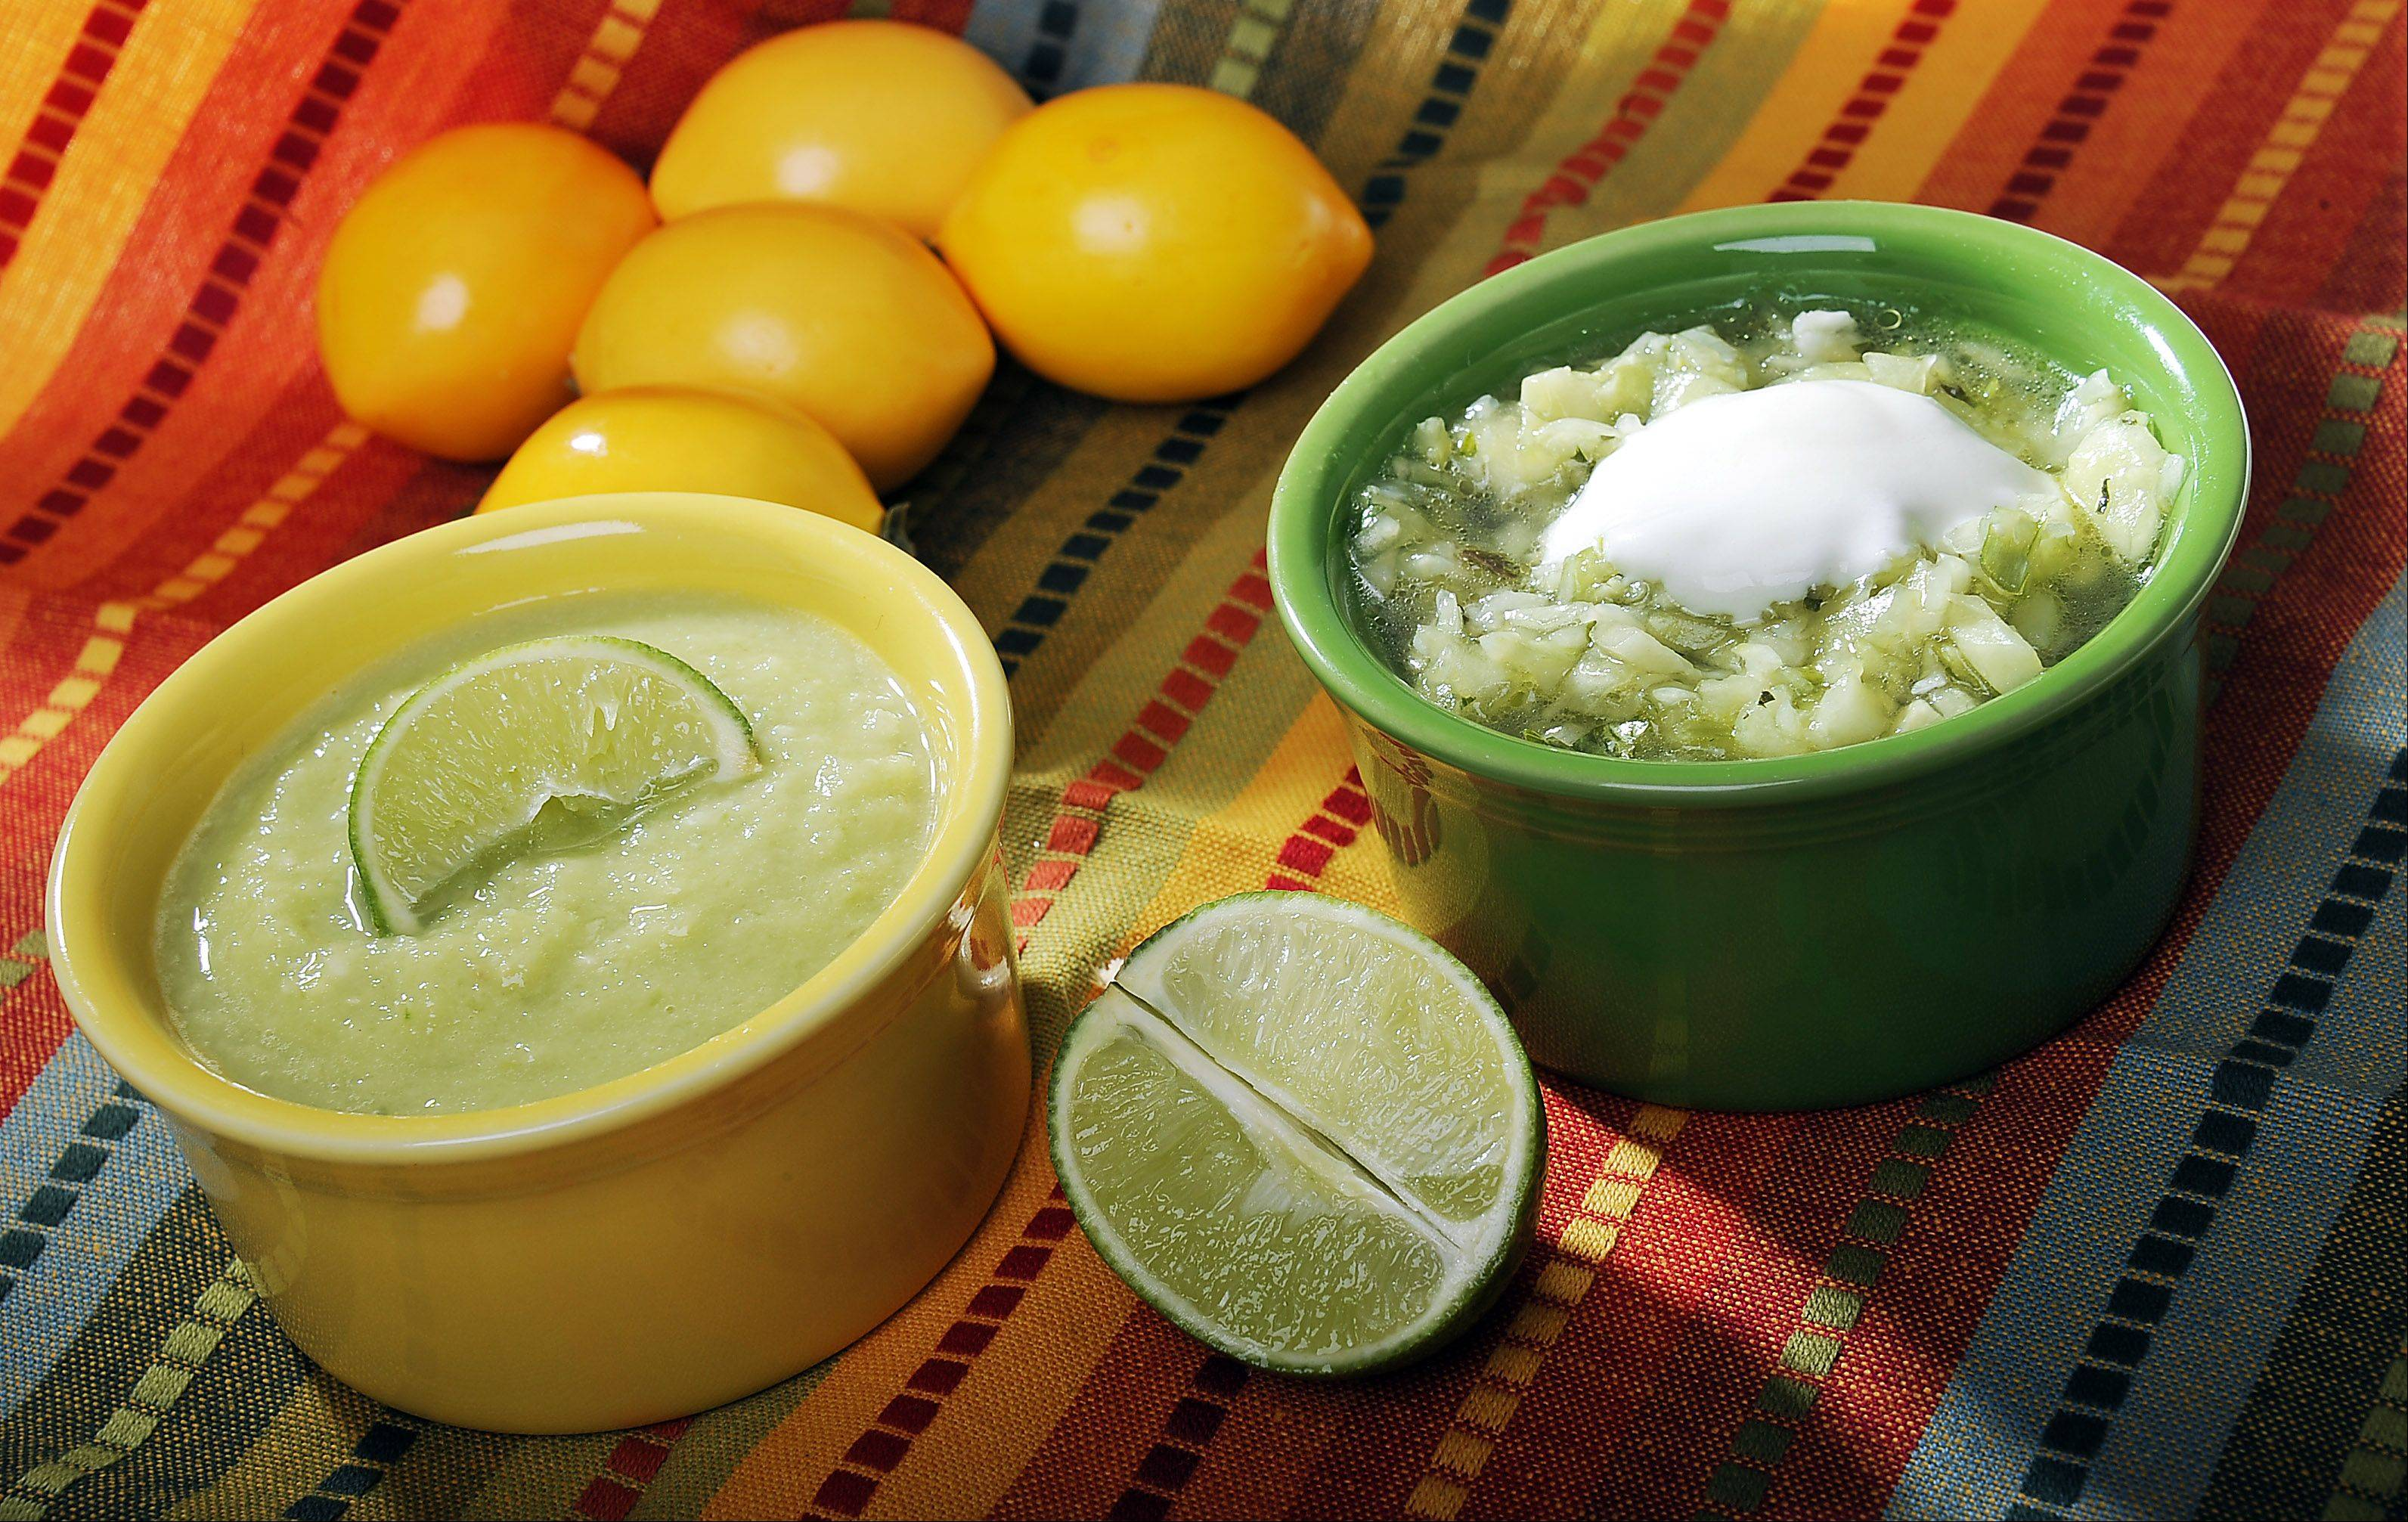 Soupalooza: Warming up to cold soups